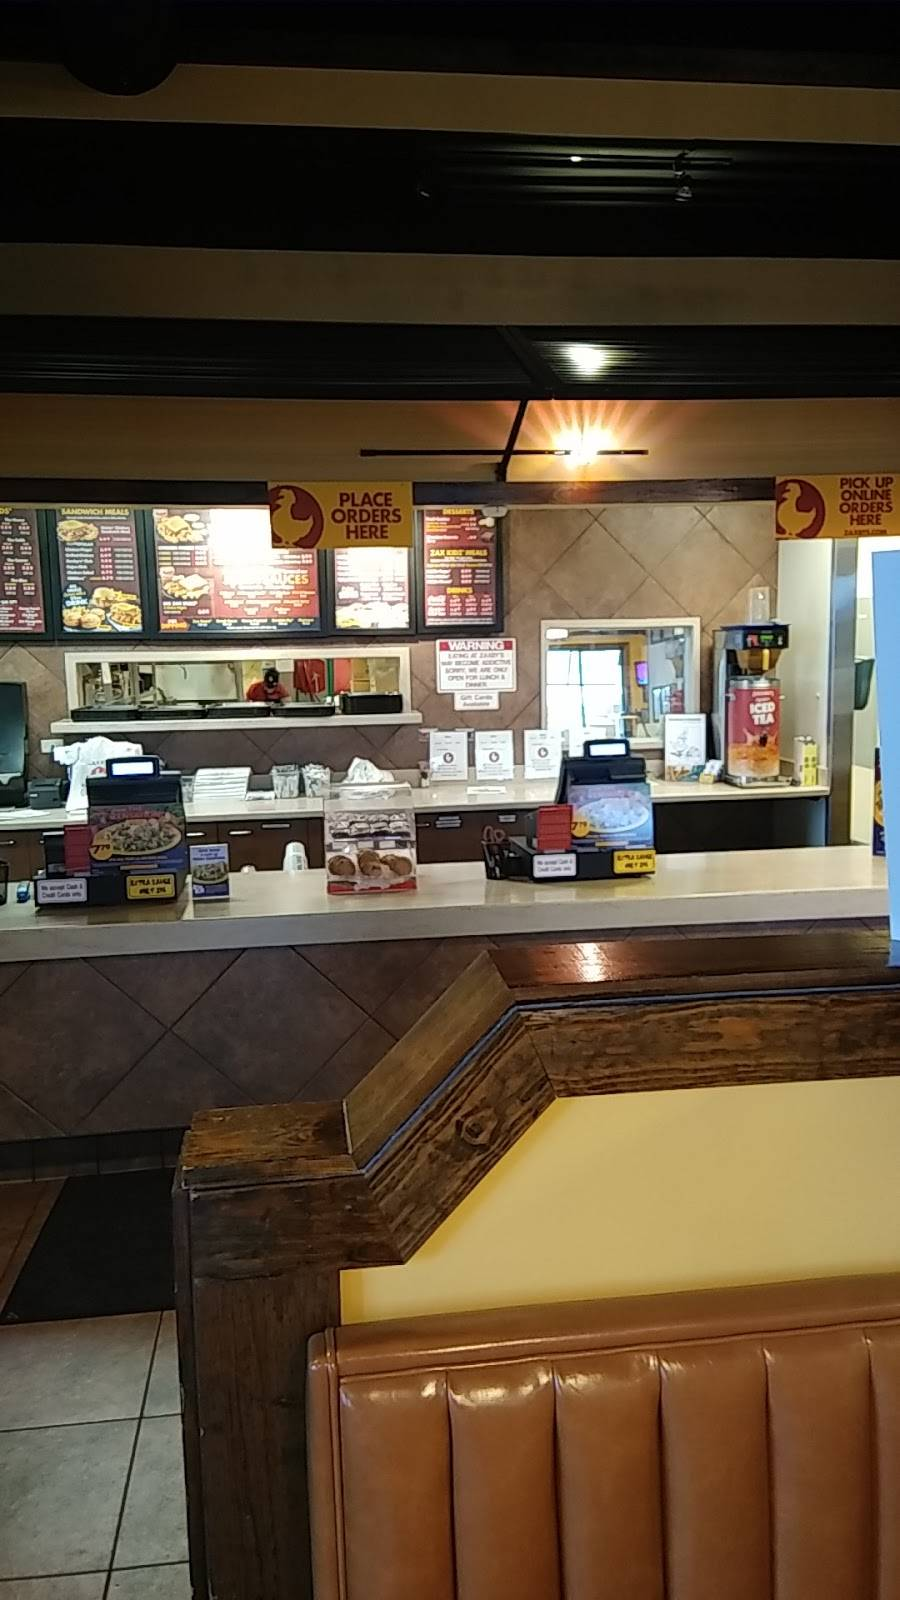 Zaxbys Chicken Fingers & Buffalo Wings - restaurant  | Photo 6 of 10 | Address: 2870 Technology Ave, New Albany, IN 47150, USA | Phone: (812) 725-7484